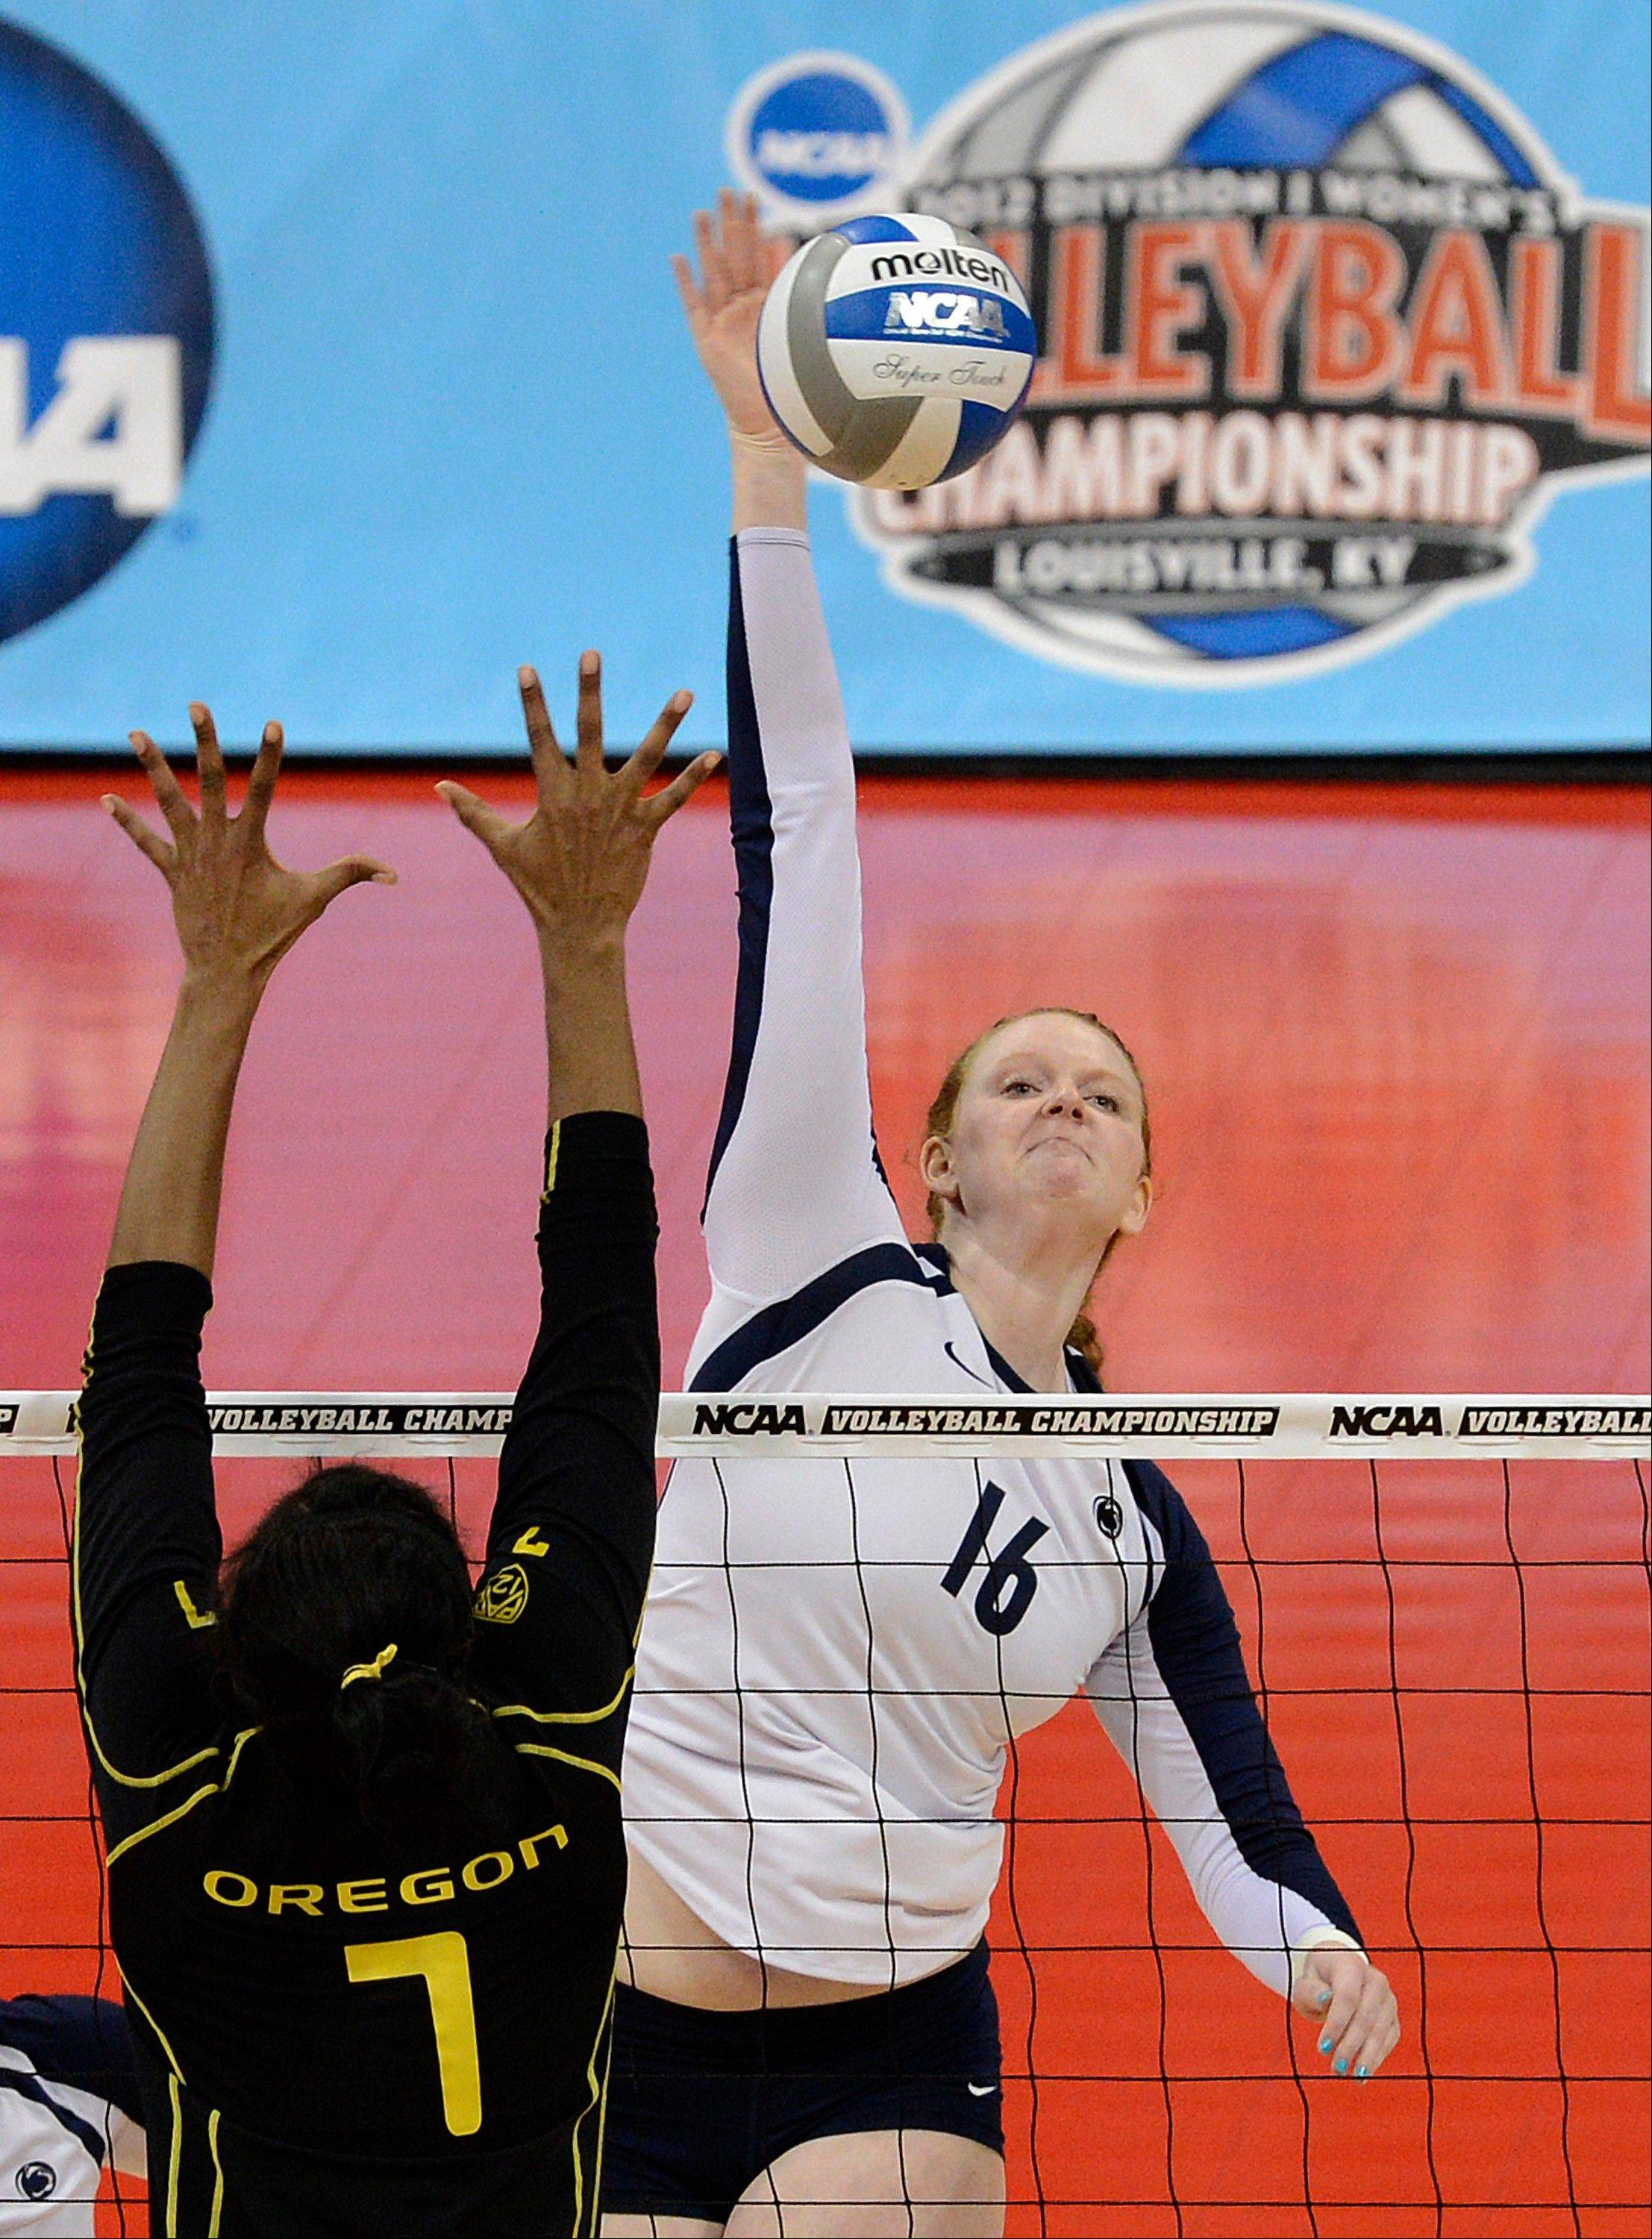 Katie Slay, right, and her Penn State teammates are no strangers to NCAA Tournament success in women�s volleyball, having won four straight national titles beginning in 2007 and reaching the Final Four this season.